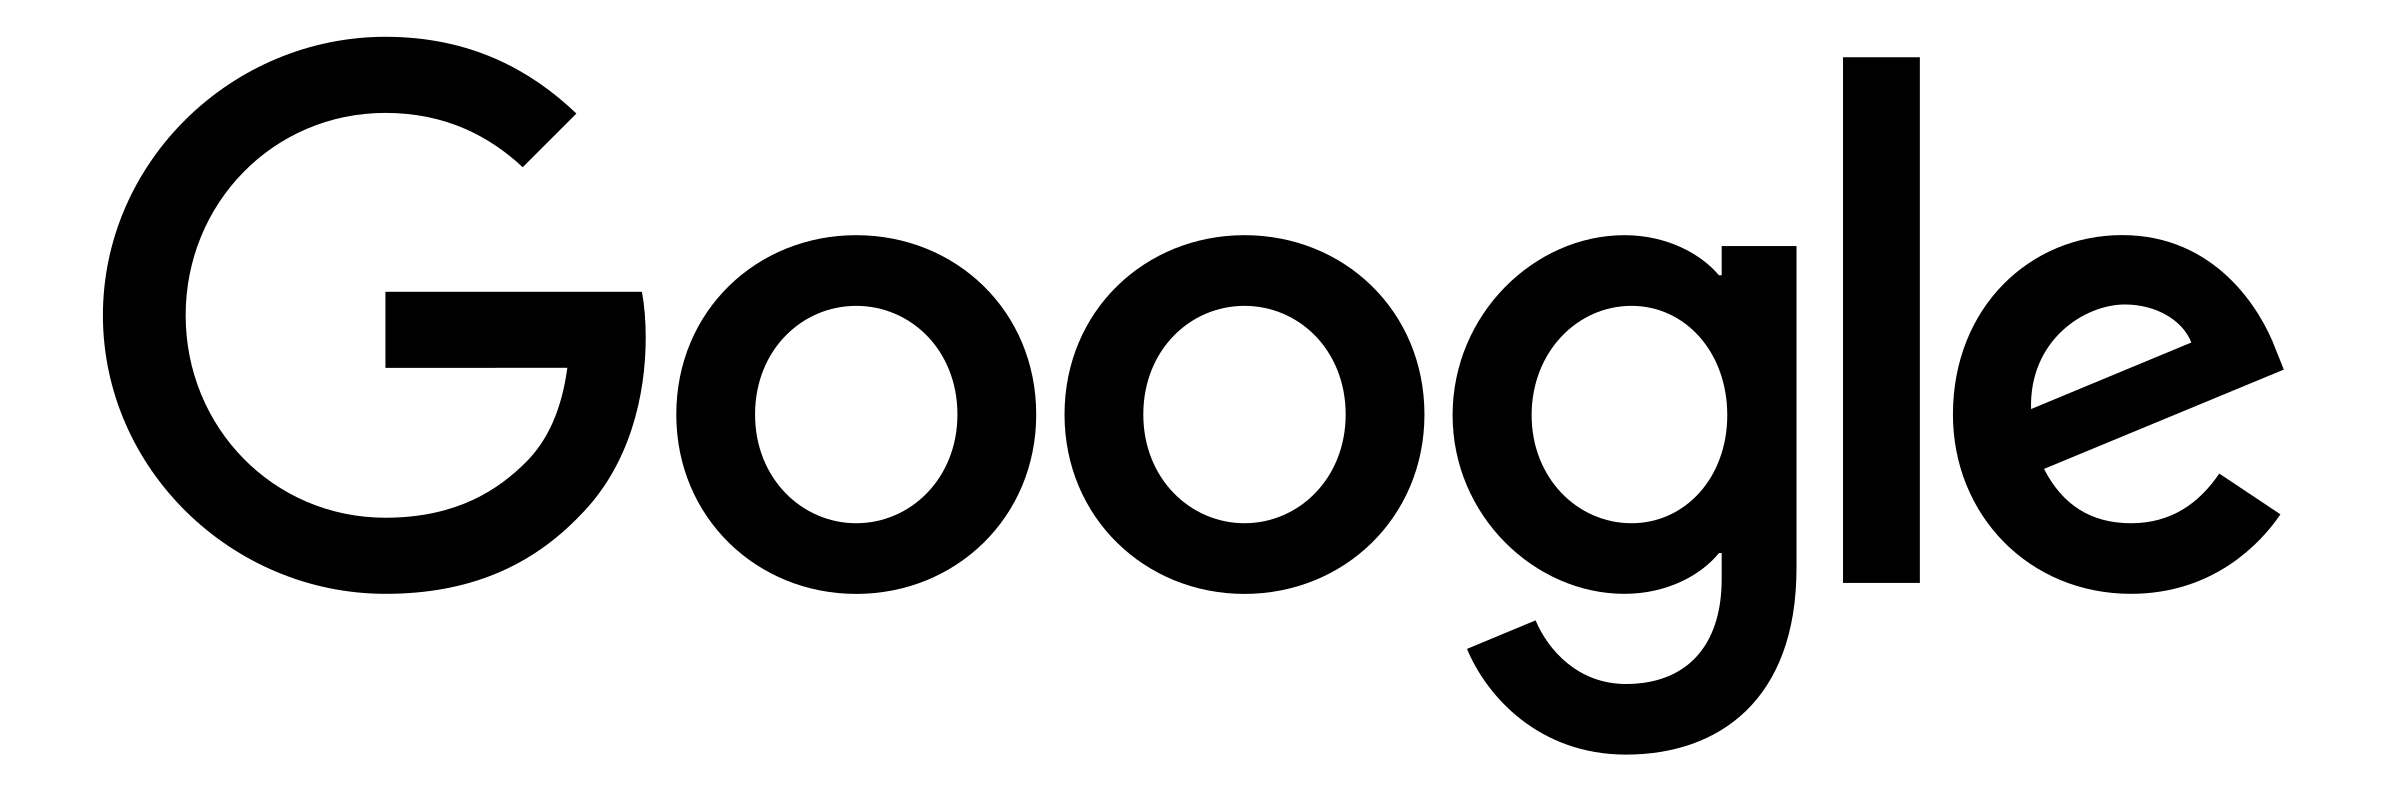 Google Black And White Logo